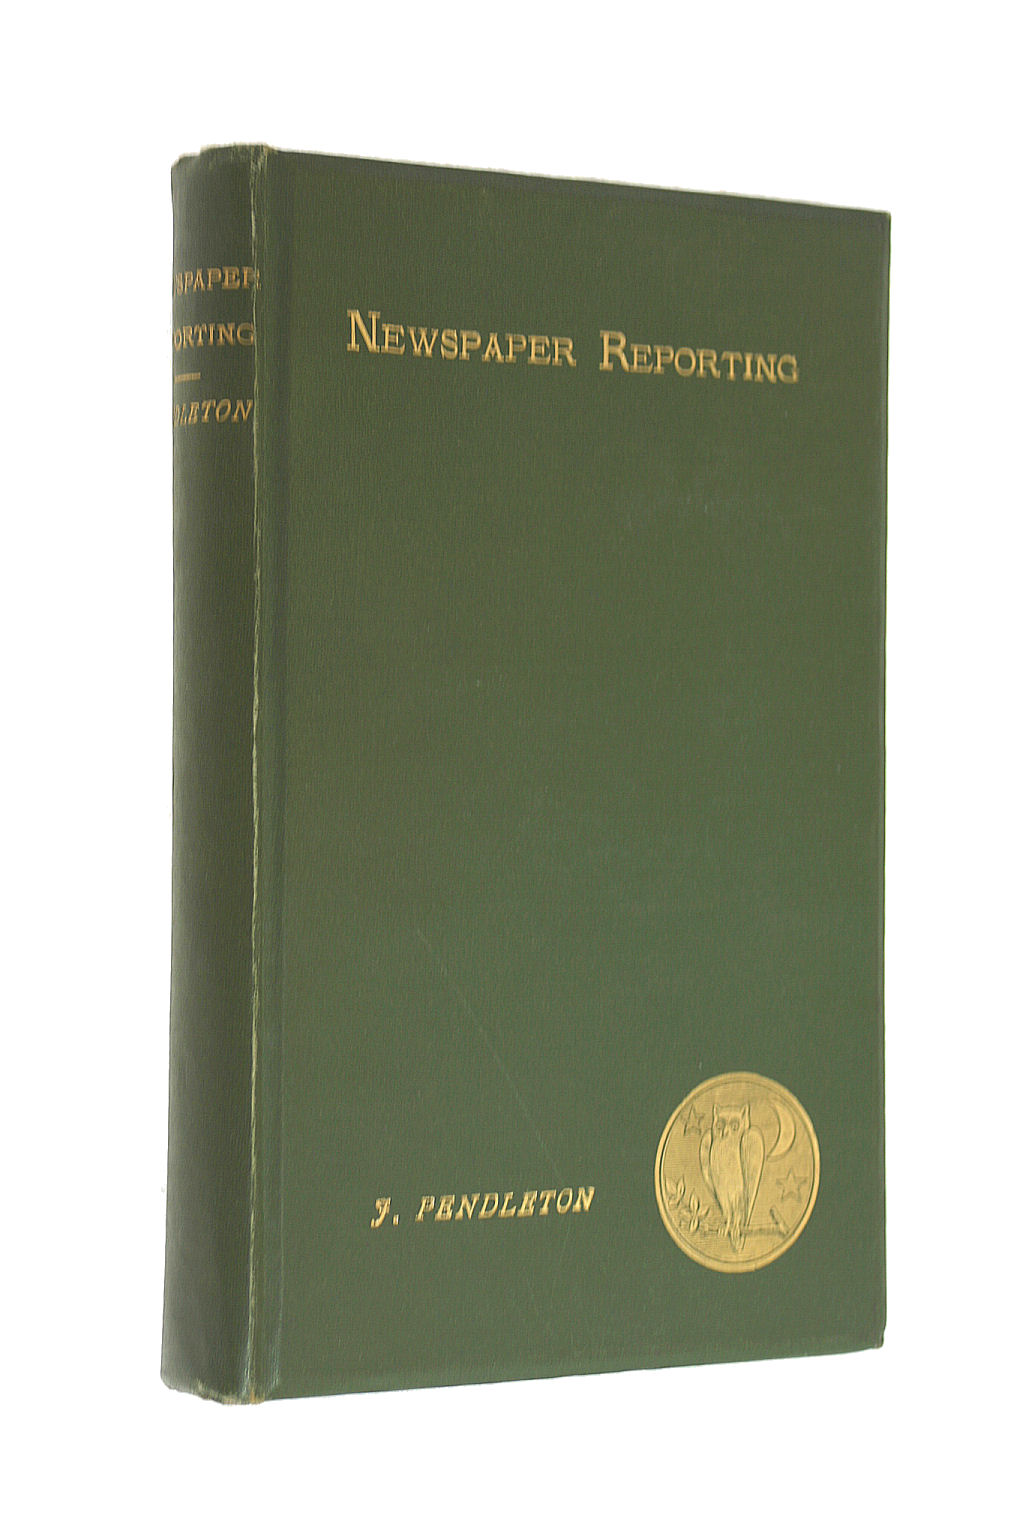 Image for Newspaper Reporting in Olden Time and to-Day (The book-lover's library)